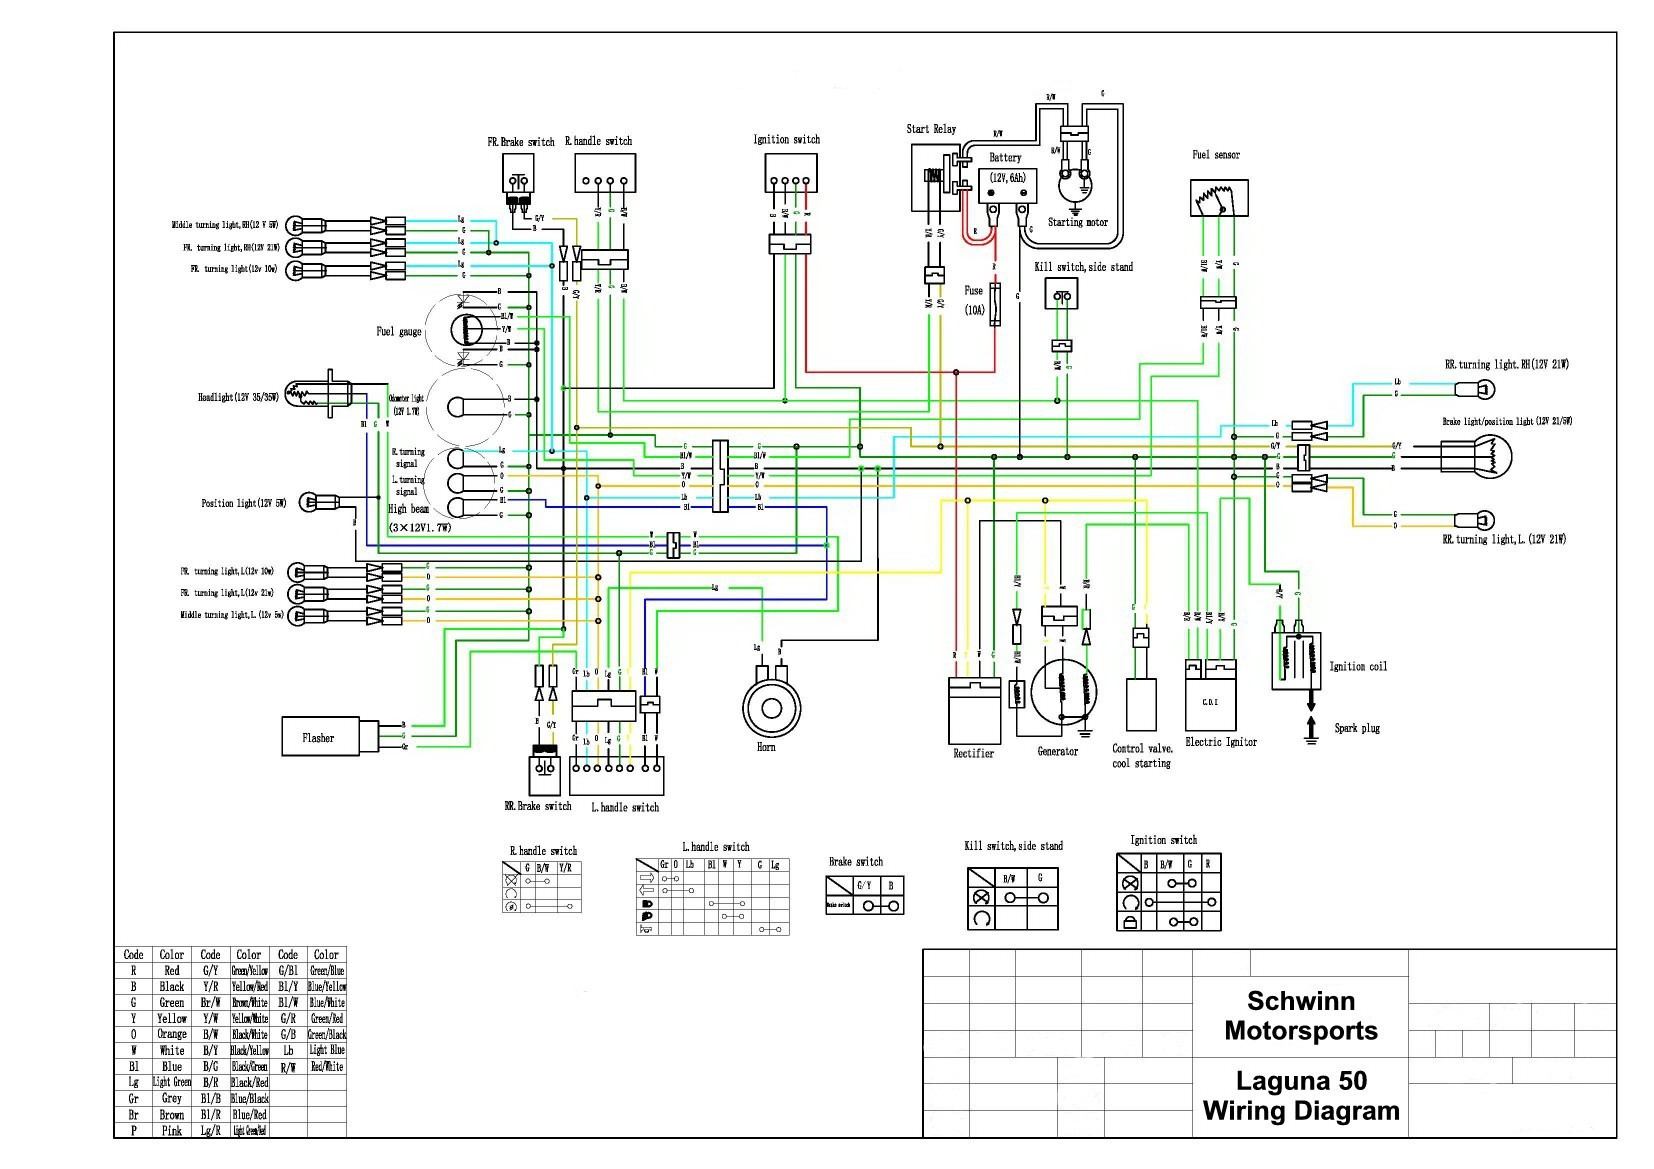 mad wiring diagram schema wiring diagram online mad wiring diagram trusted wiring diagram auto wiring diagrams mad dog wiring diagram trusted wiring diagram